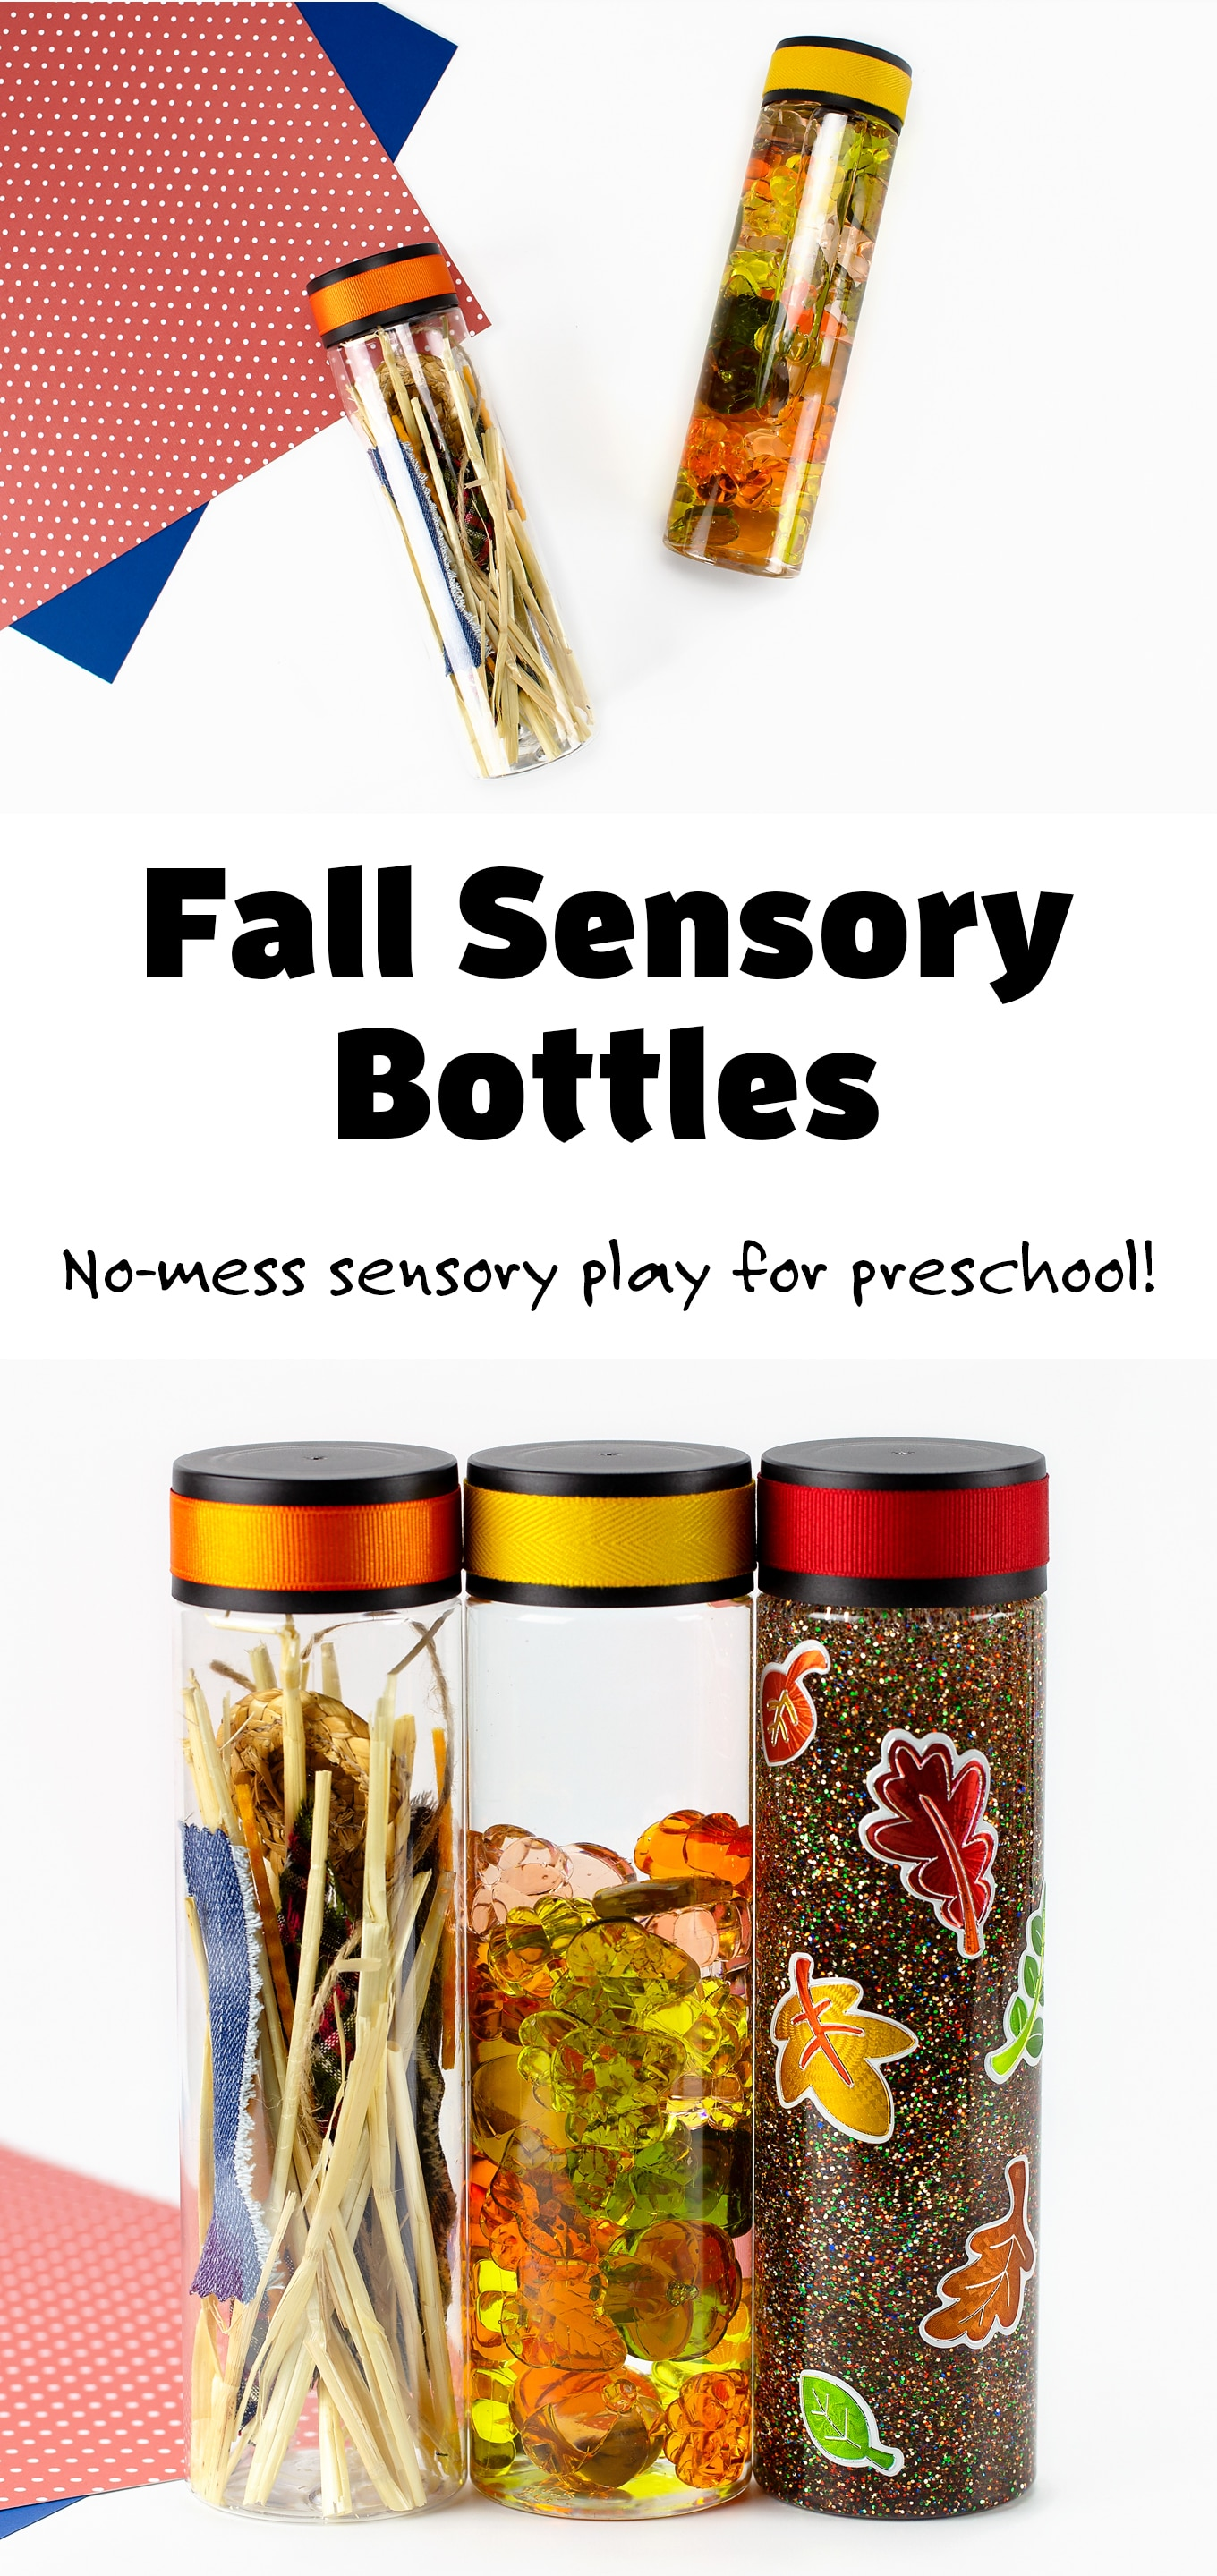 Learn how to make three mesmerizing fall sensory bottles (pumpkin, leaf, and scarecrow) that are perfect for safe, no-mess sensory play at home or at school. DIY sensory play ideas for preschool, toddlers, and older kids! #fallsensorybottles #preschool #sensoryplayideas #kids via @firefliesandmudpies